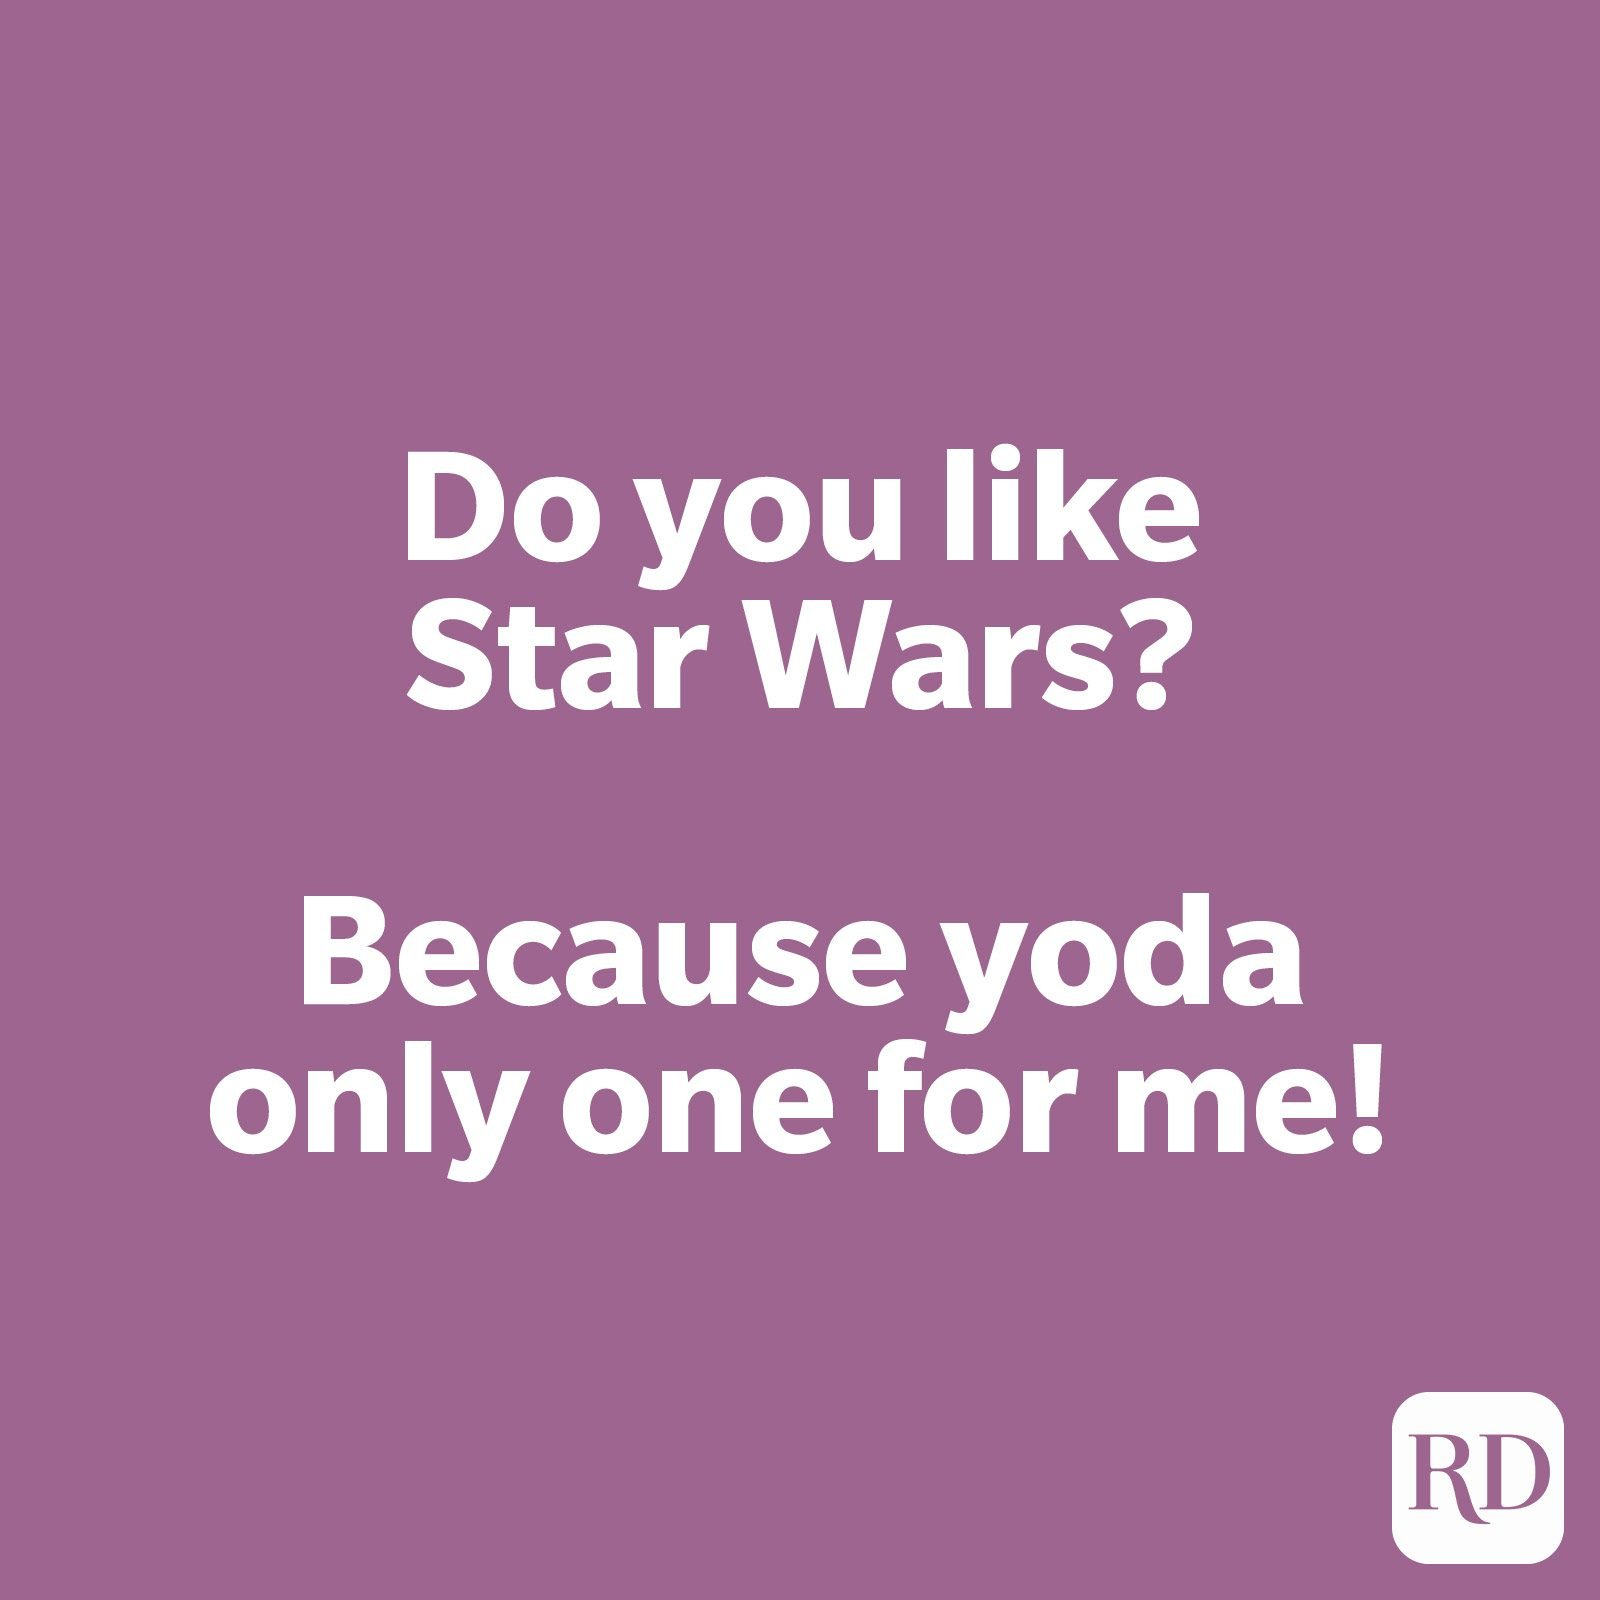 Do you like Star Wars? Because yoda only one for me!